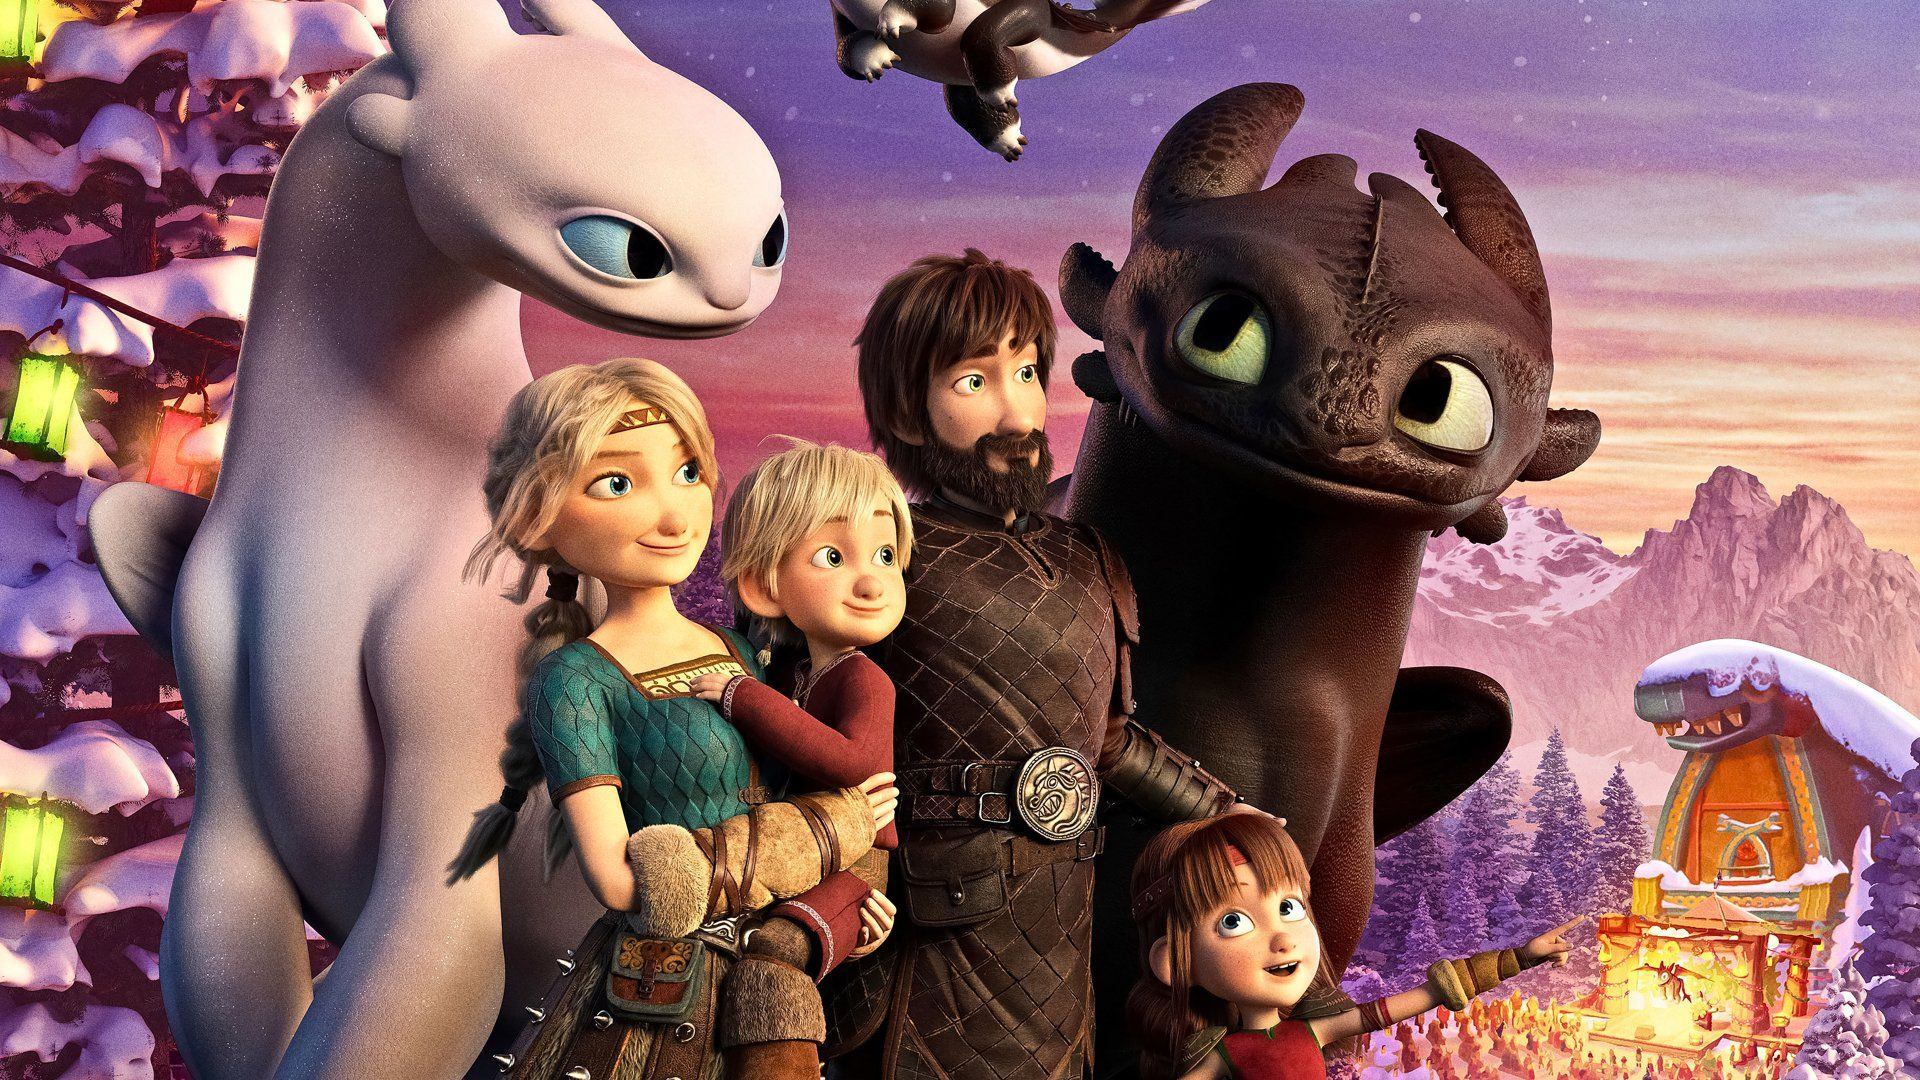 How To Train Your Dragon 1 Wallpapers - Wallpaper Cave